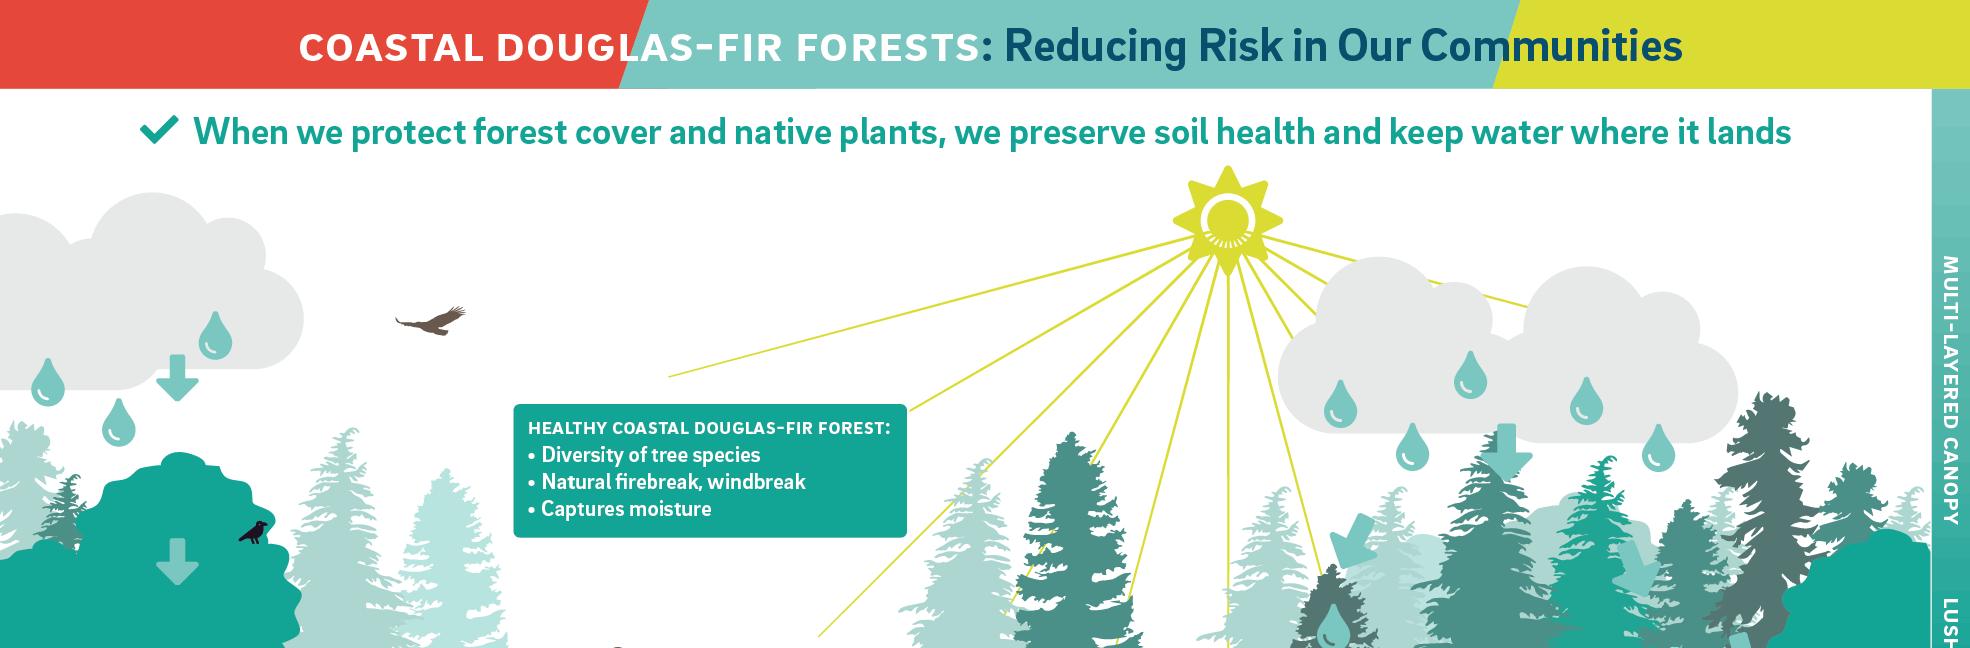 Forest management infographic